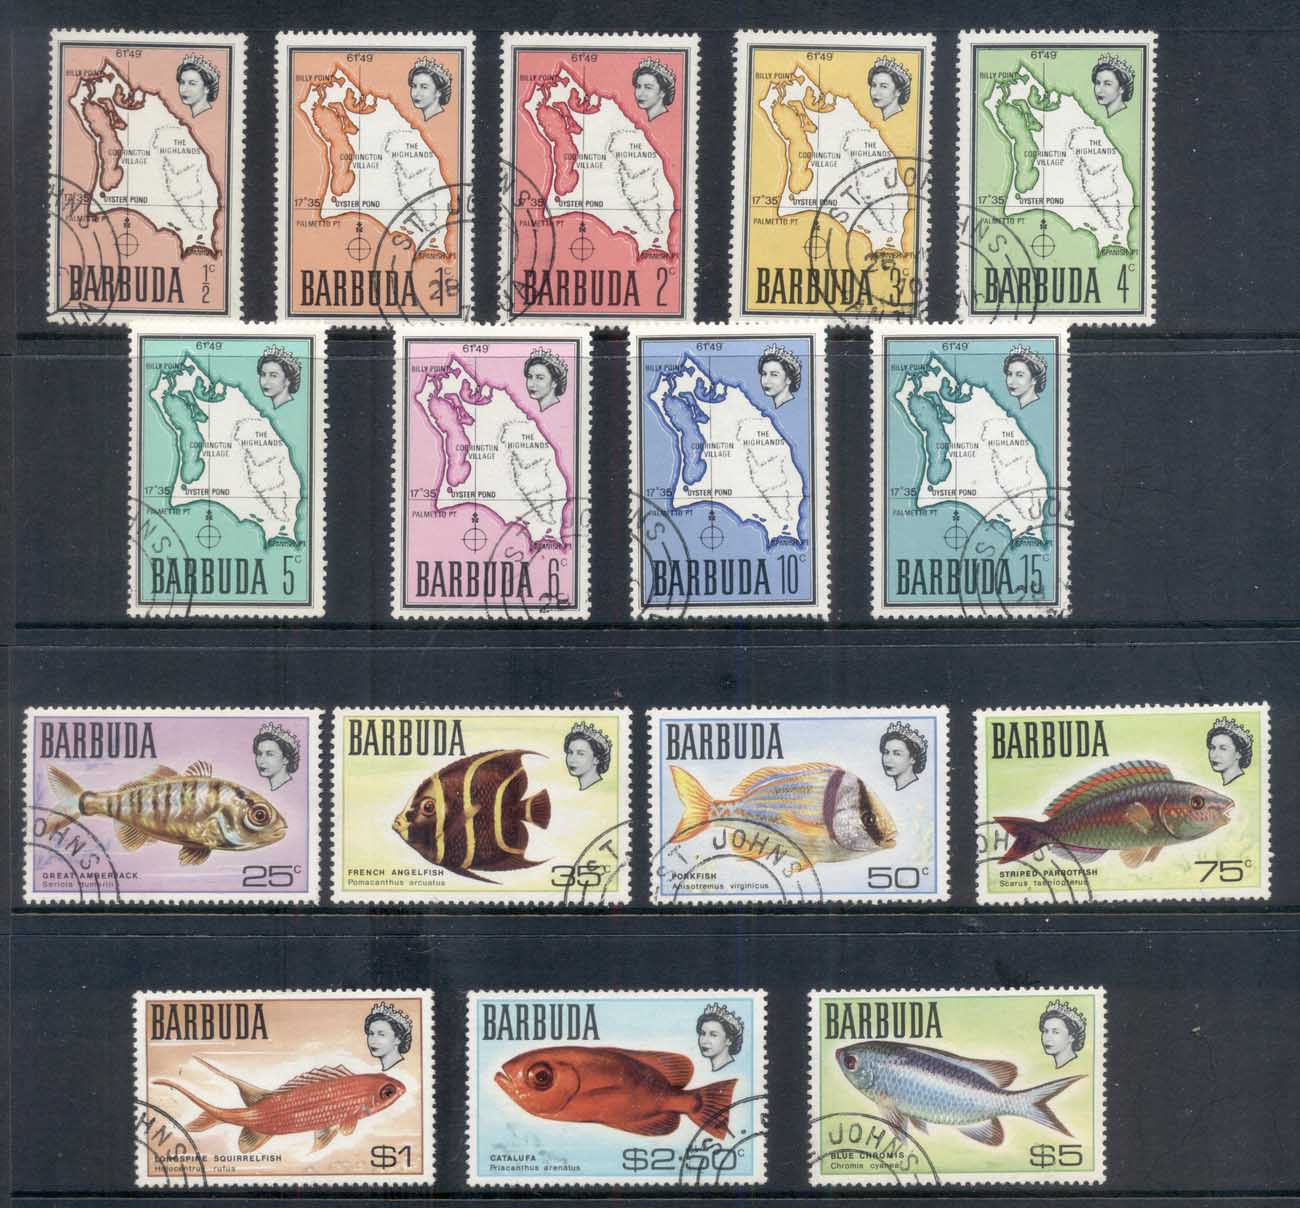 Barbuda 1968-70 Pictorials, Map, Fish (16/17, no 20c) FU